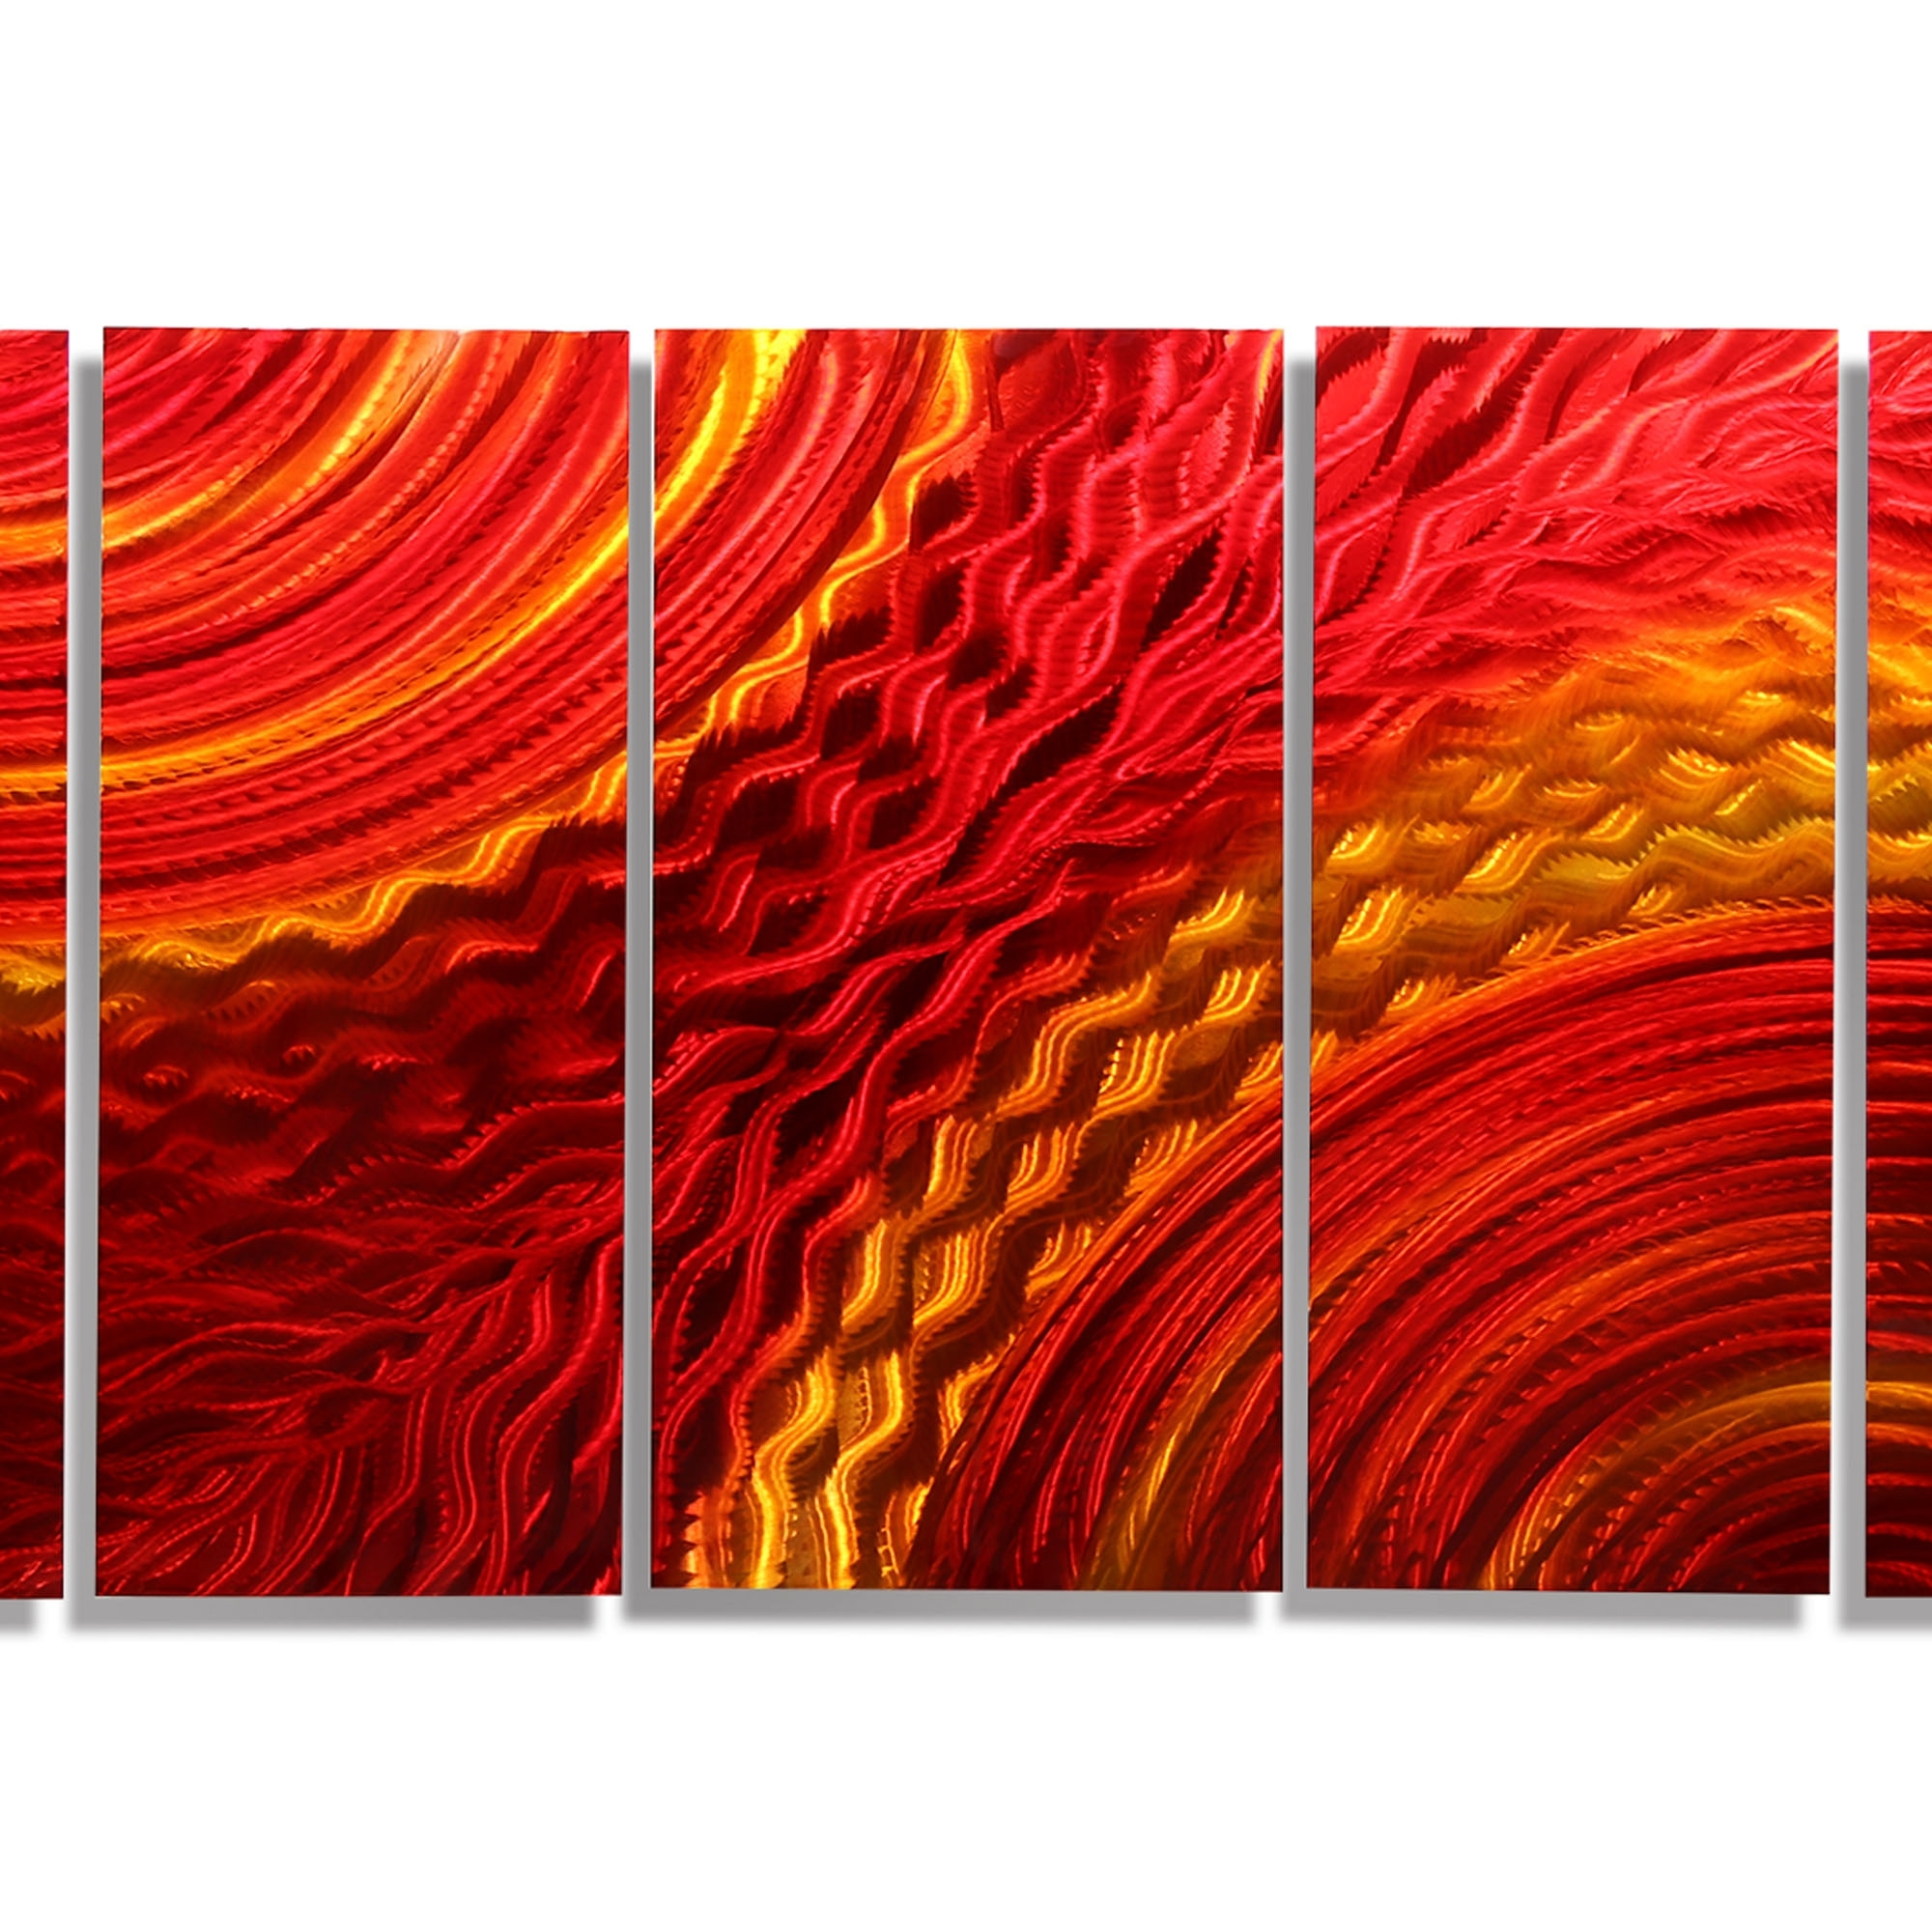 Harvest Moods – Dynamic Red & Gold Modern Metal Wall Sculpture Within 2018 Red Wall Art (View 10 of 15)